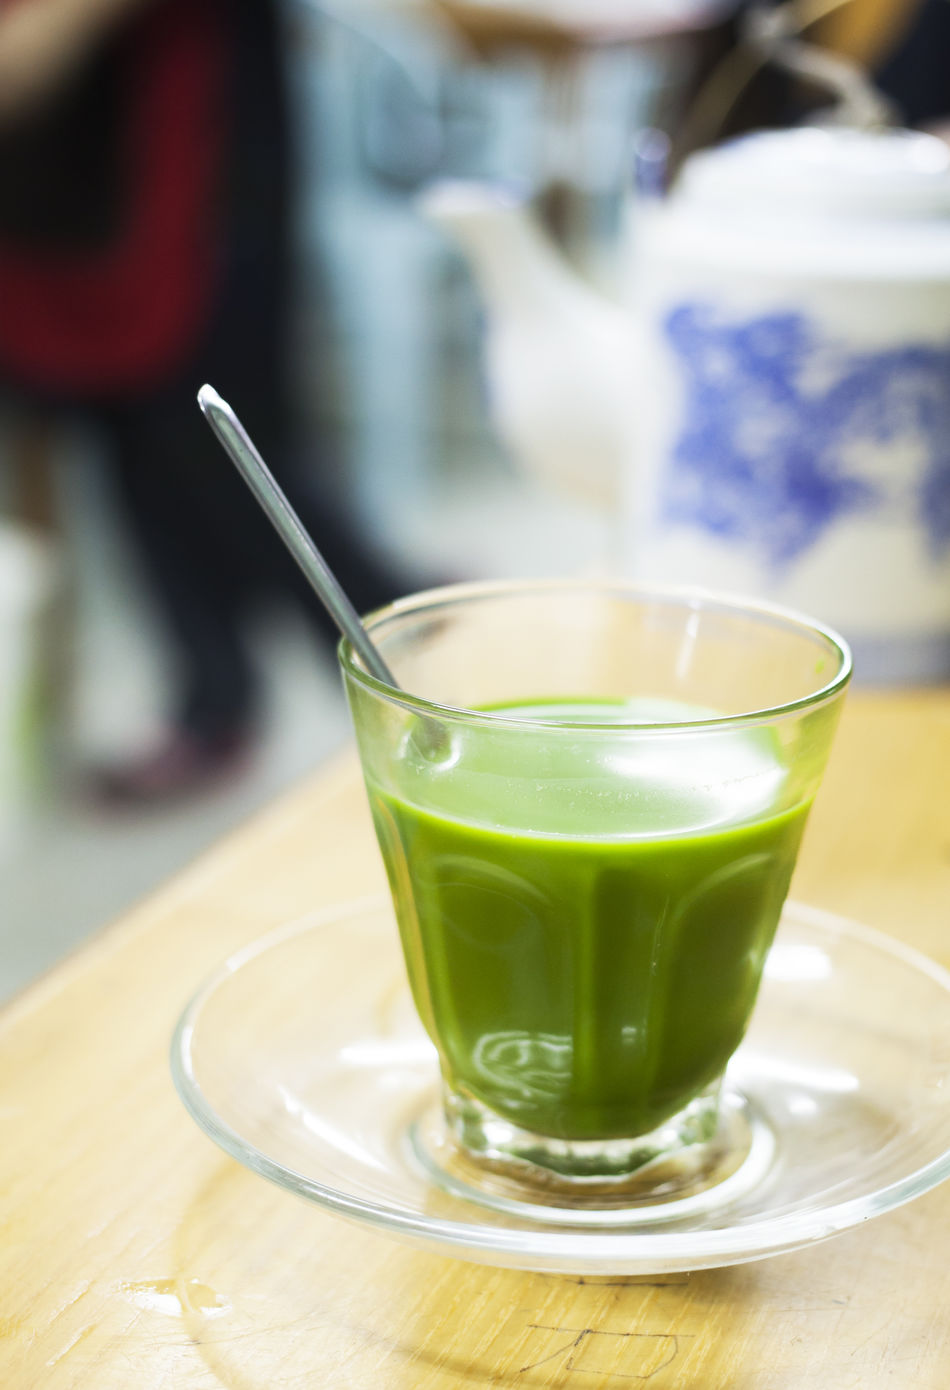 Cup Delicious Drink Green Healthy Hot Matcha Milk Sweet Tasty Tea